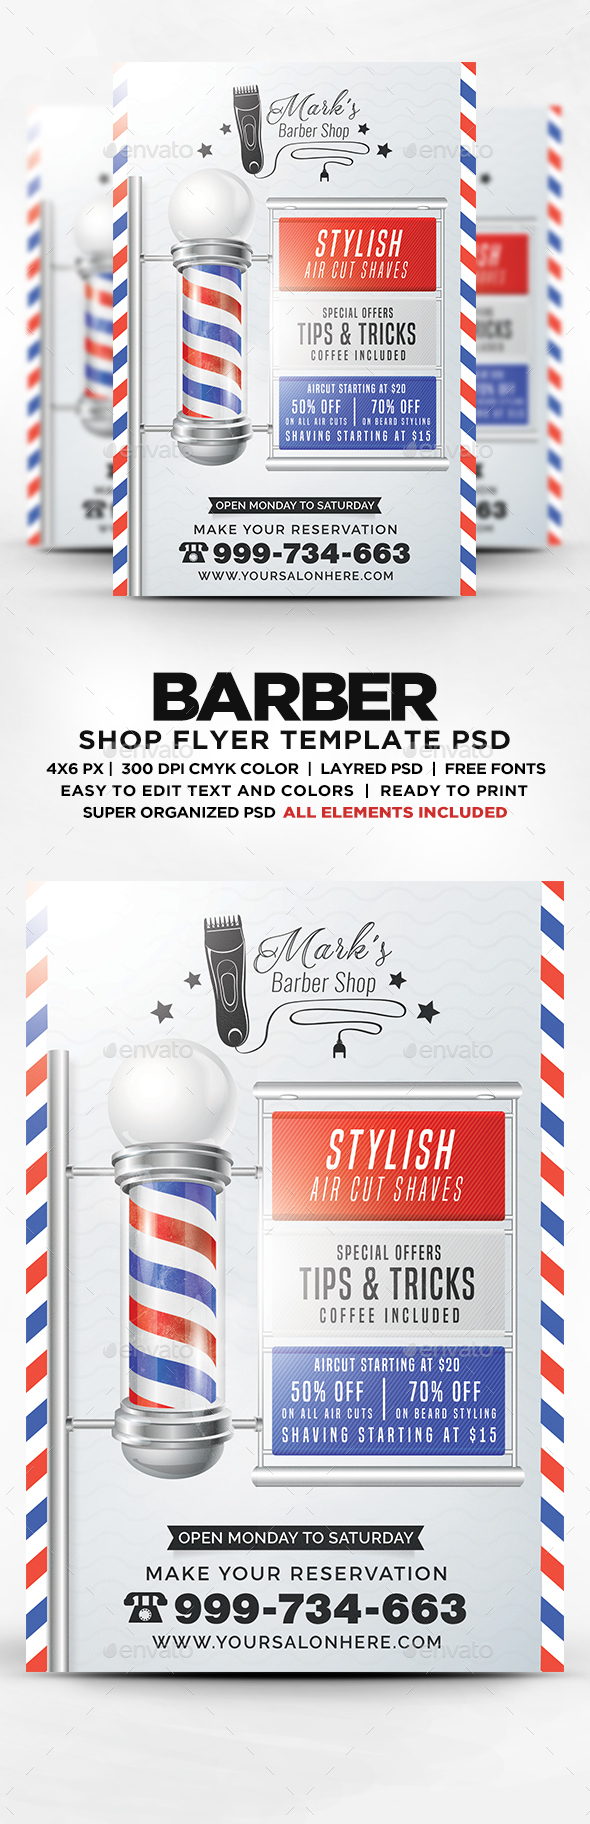 Barber Shop Flyer Template PSD. Download here: https://graphicriver ...